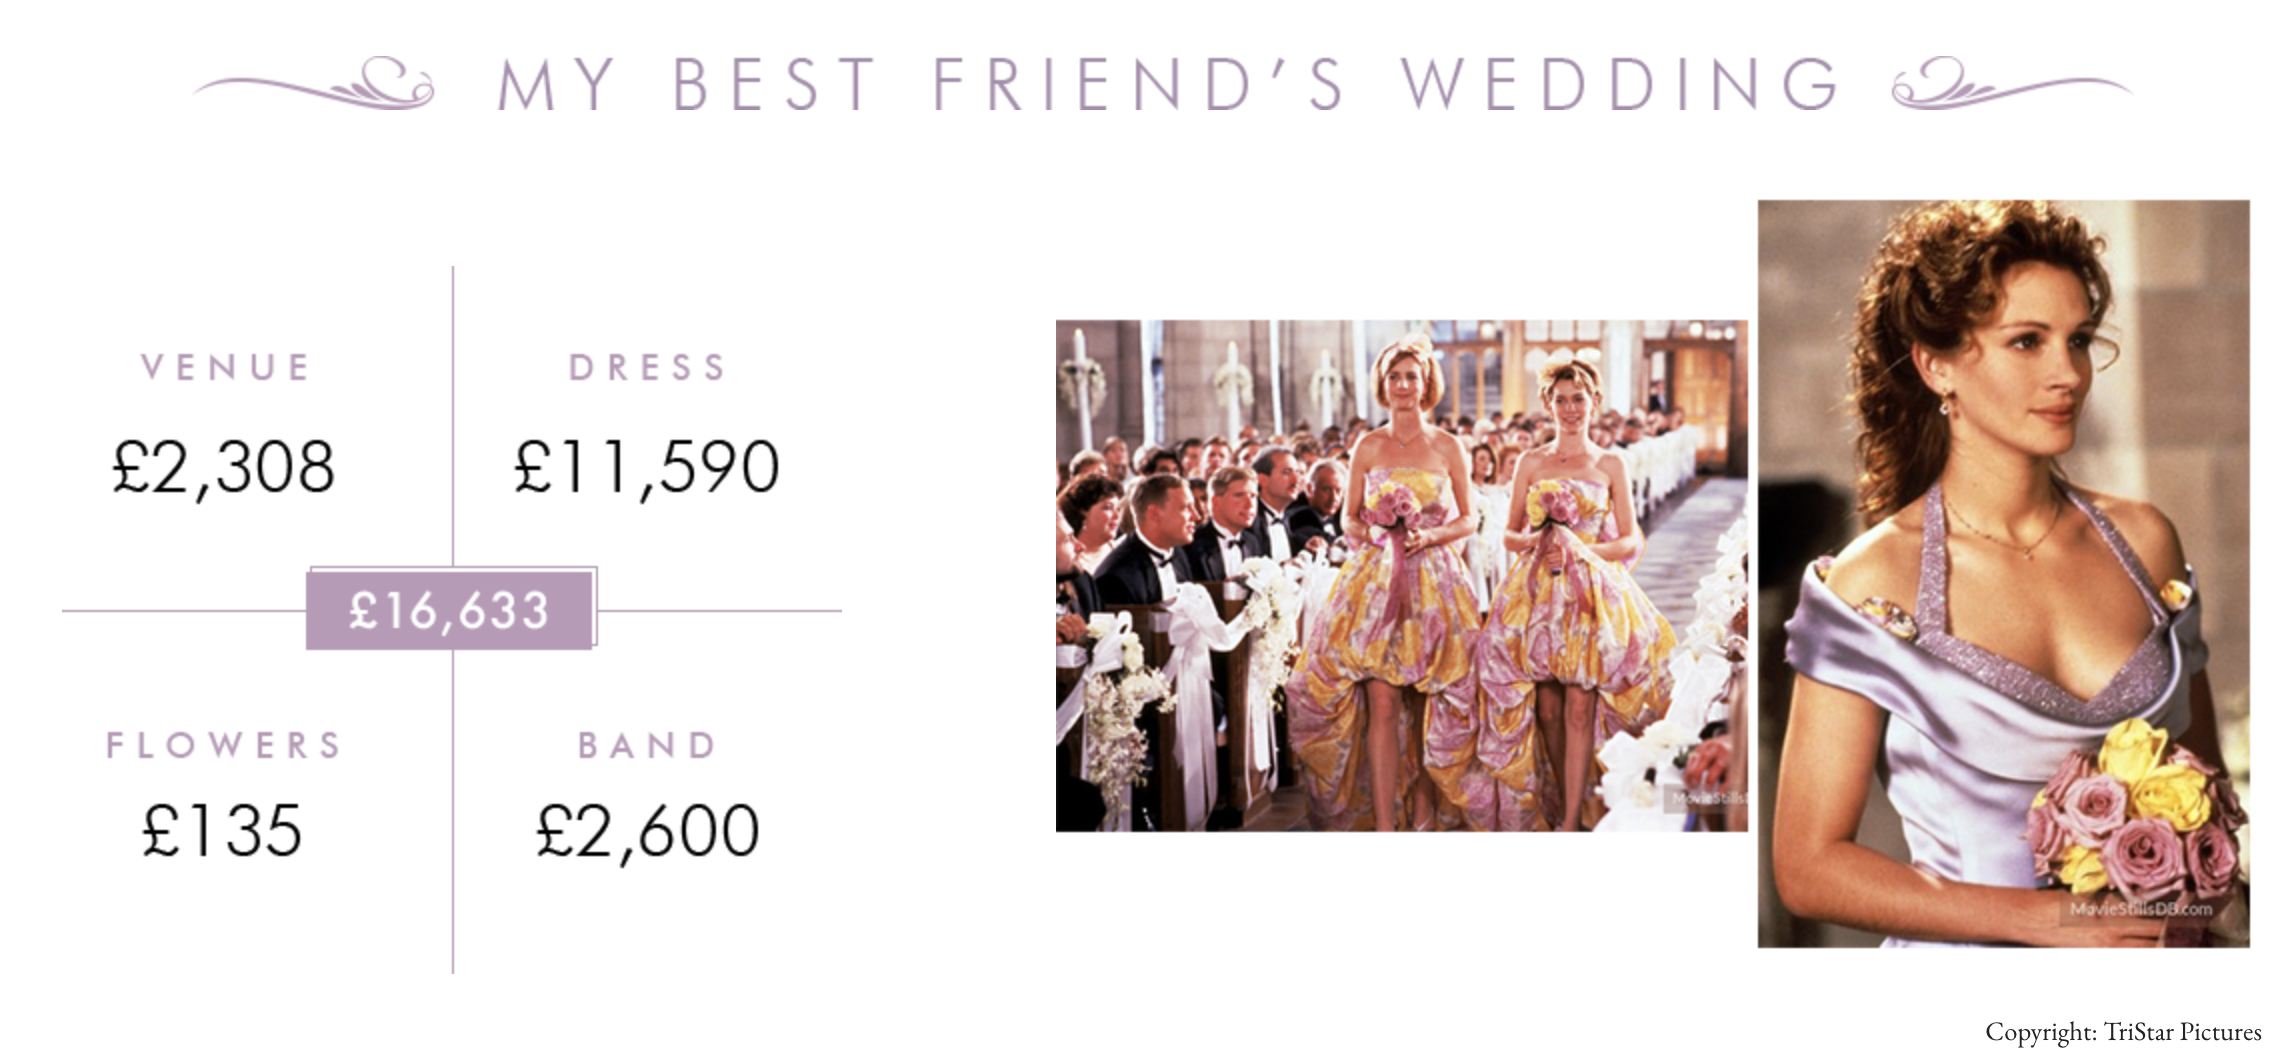 my best friends wedding movie cost in real life